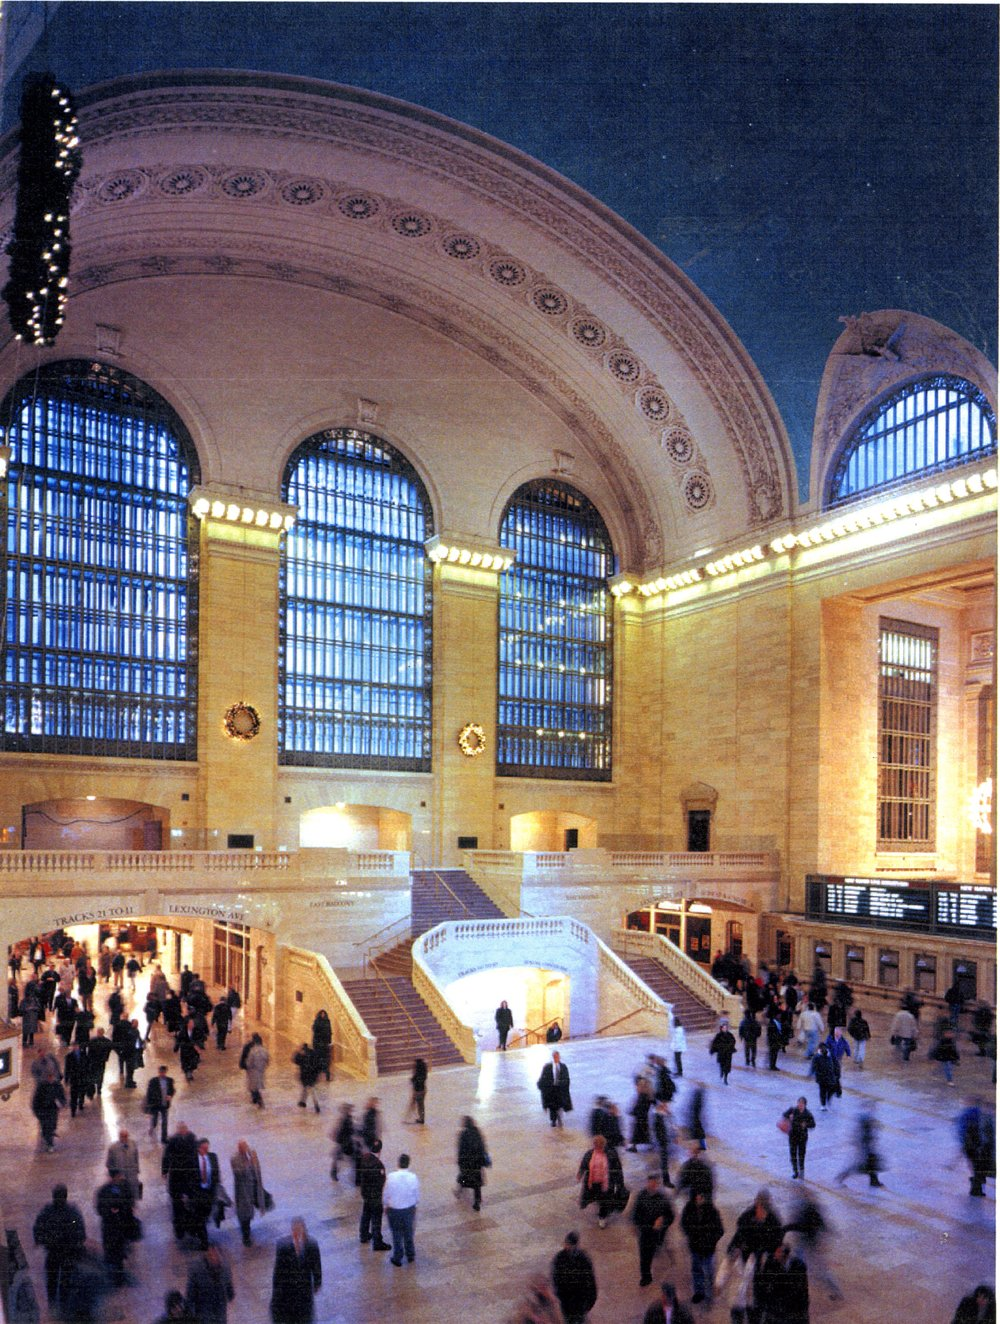 All GCT images by James Rudnick